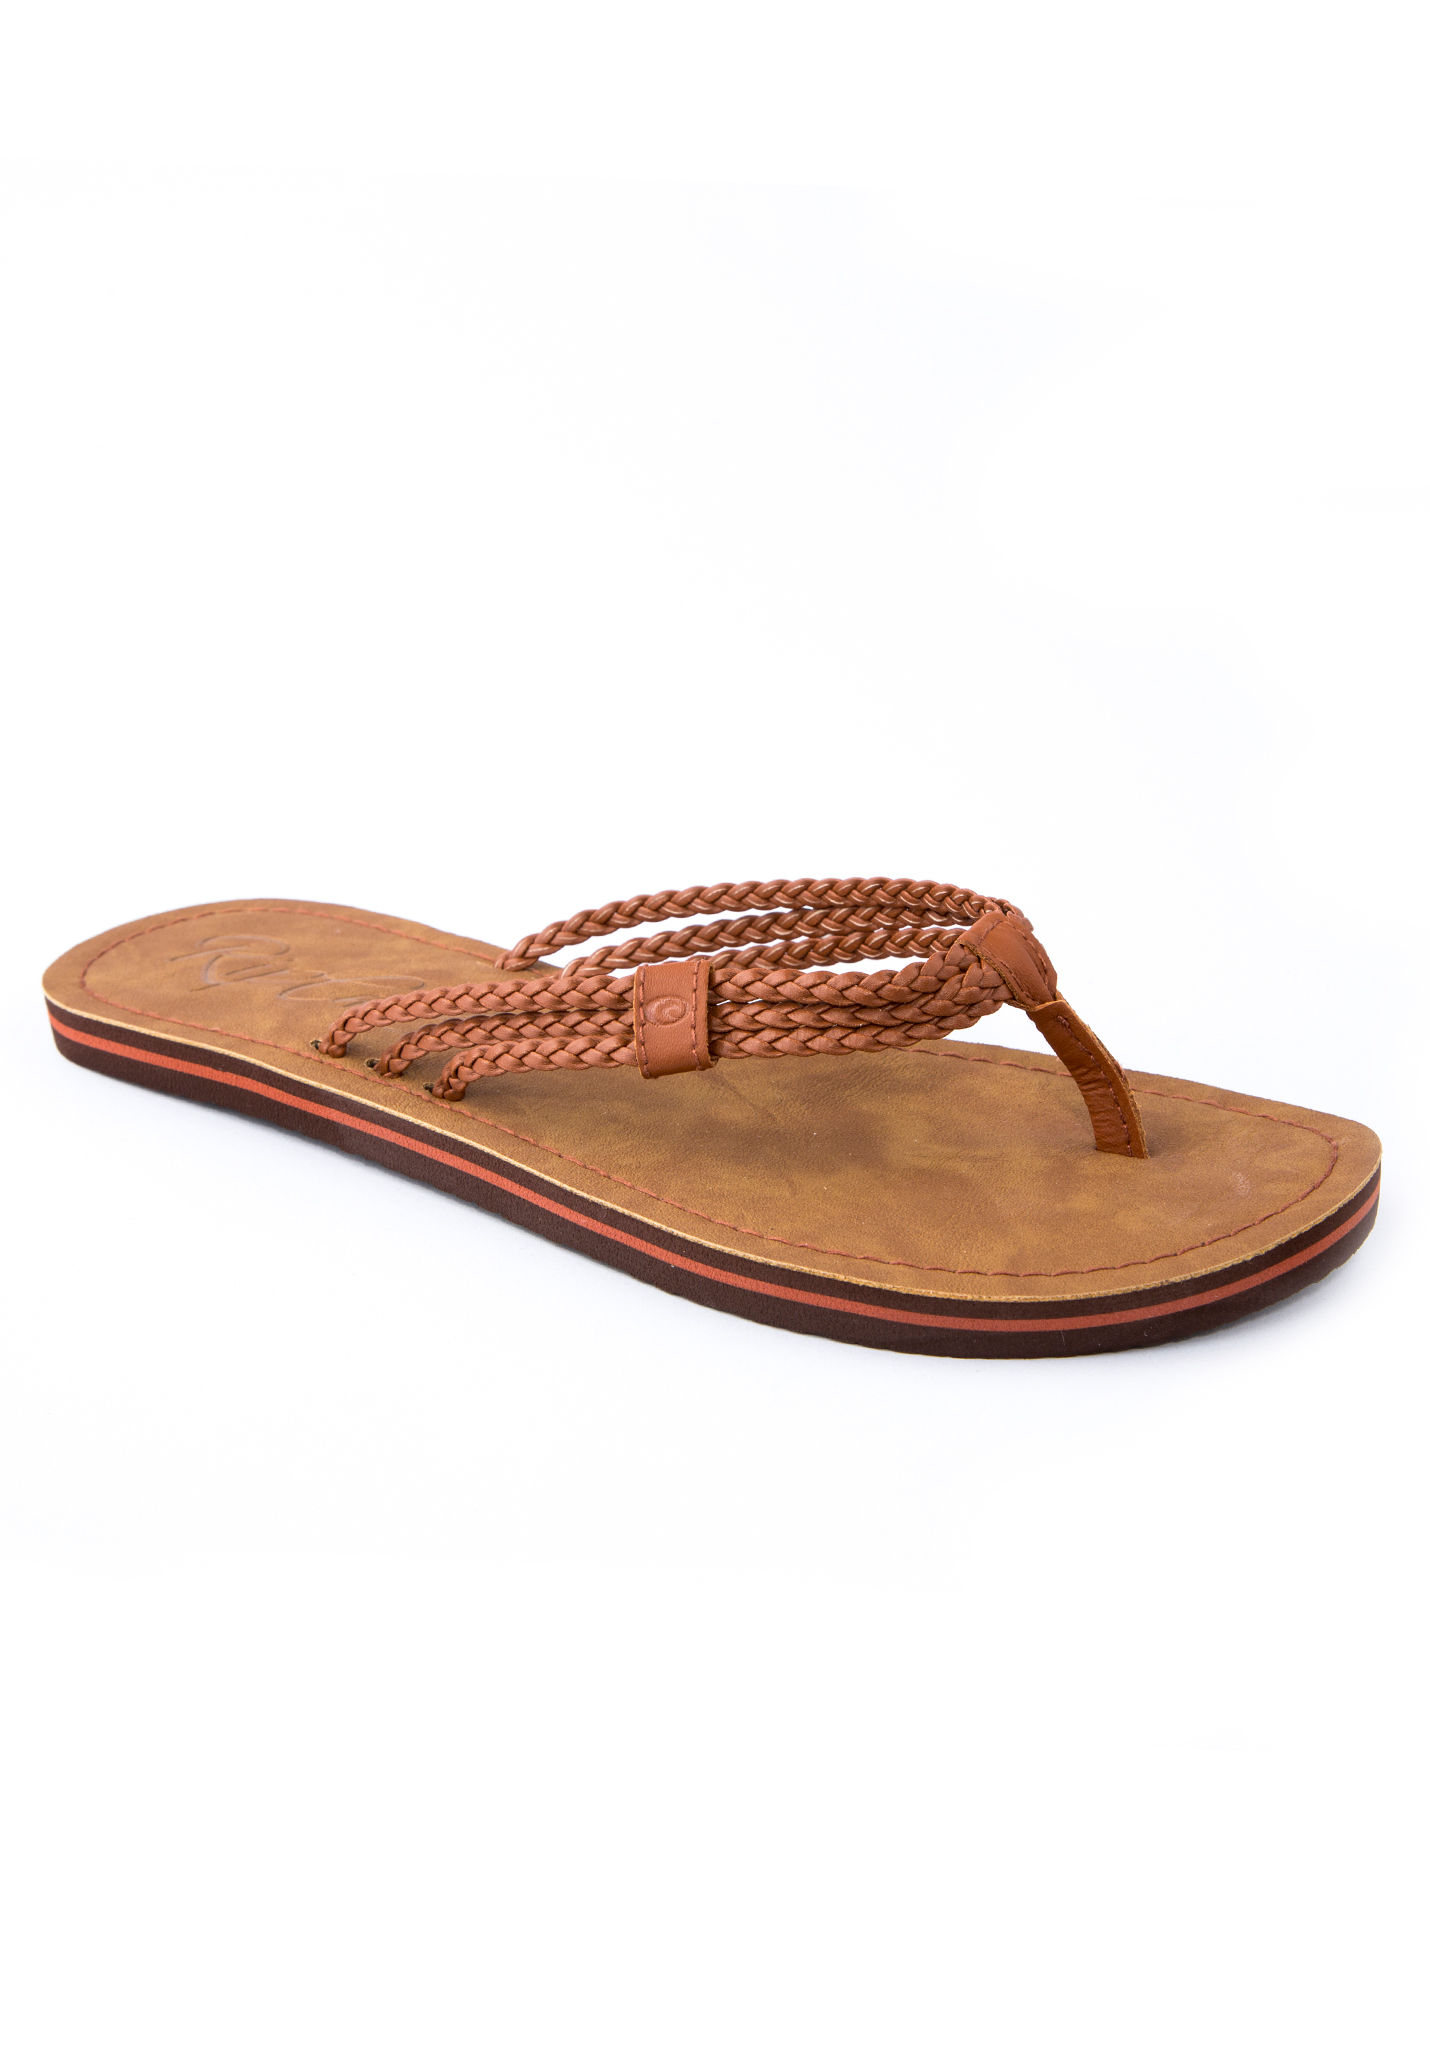 Rip Curl Ivy Rip Curl- Brown sandals